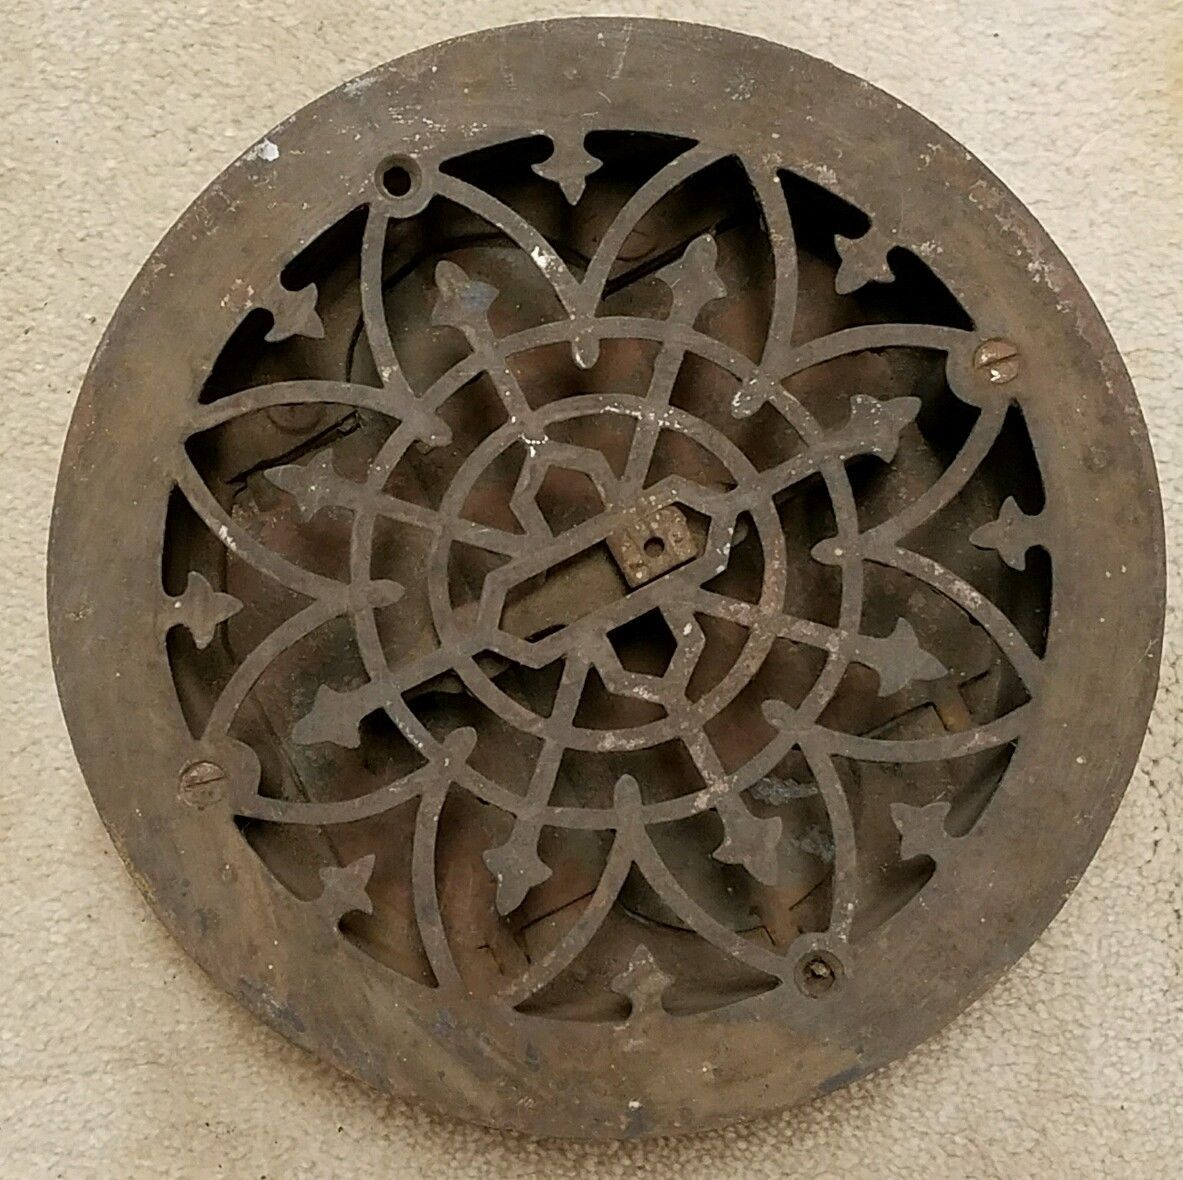 1882 Simonds Mfg Co Round Ornate Cast Iron Floor Register Grate Vent 9 25 034 Ebay Antique Hardware Antiques Cast Iron